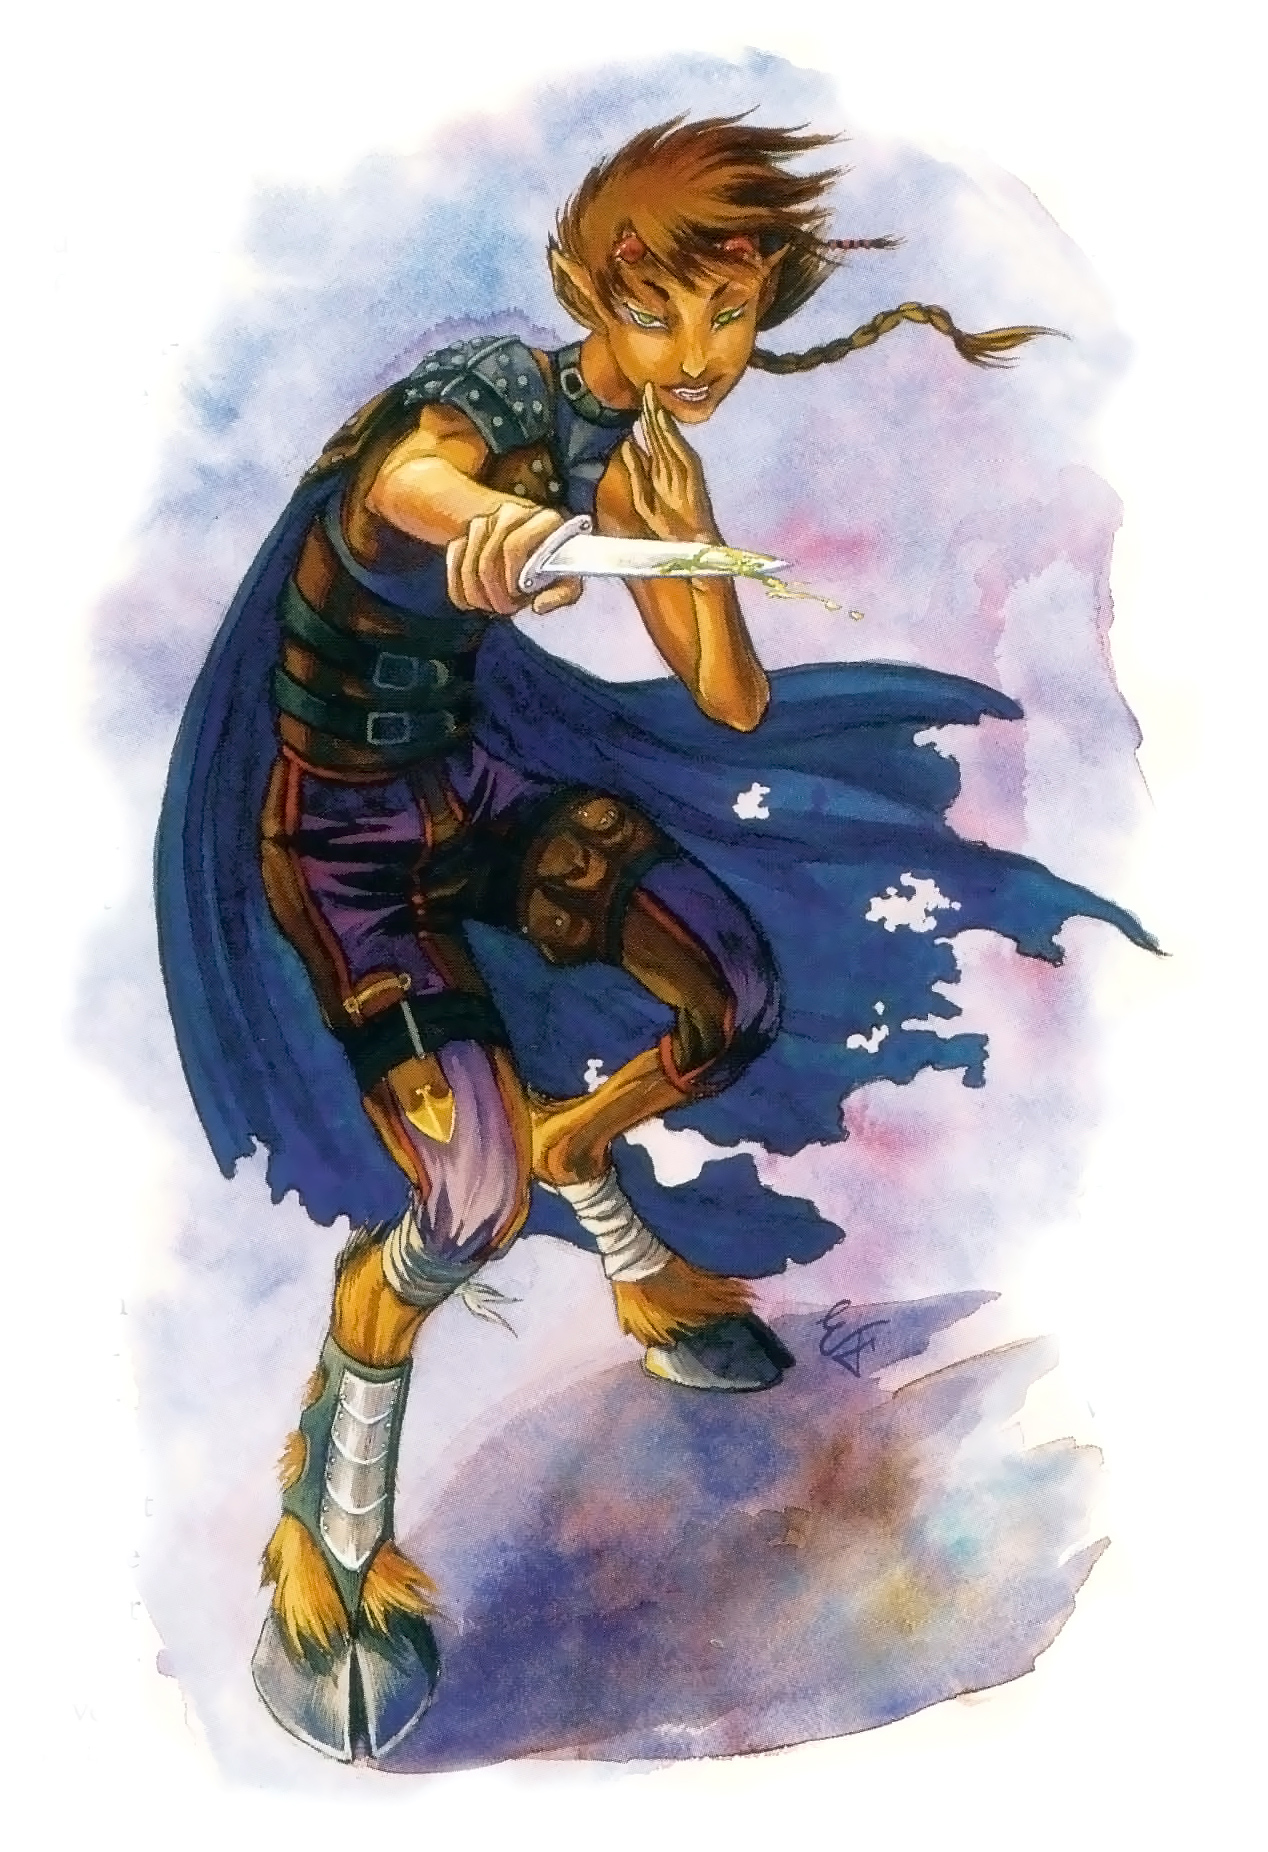 planetouched Tiefling - by Emily Fiegenschuh Planar Handbook, A Player's Guide to the Planes (2004) © Wizards of the Coast & Hasbro